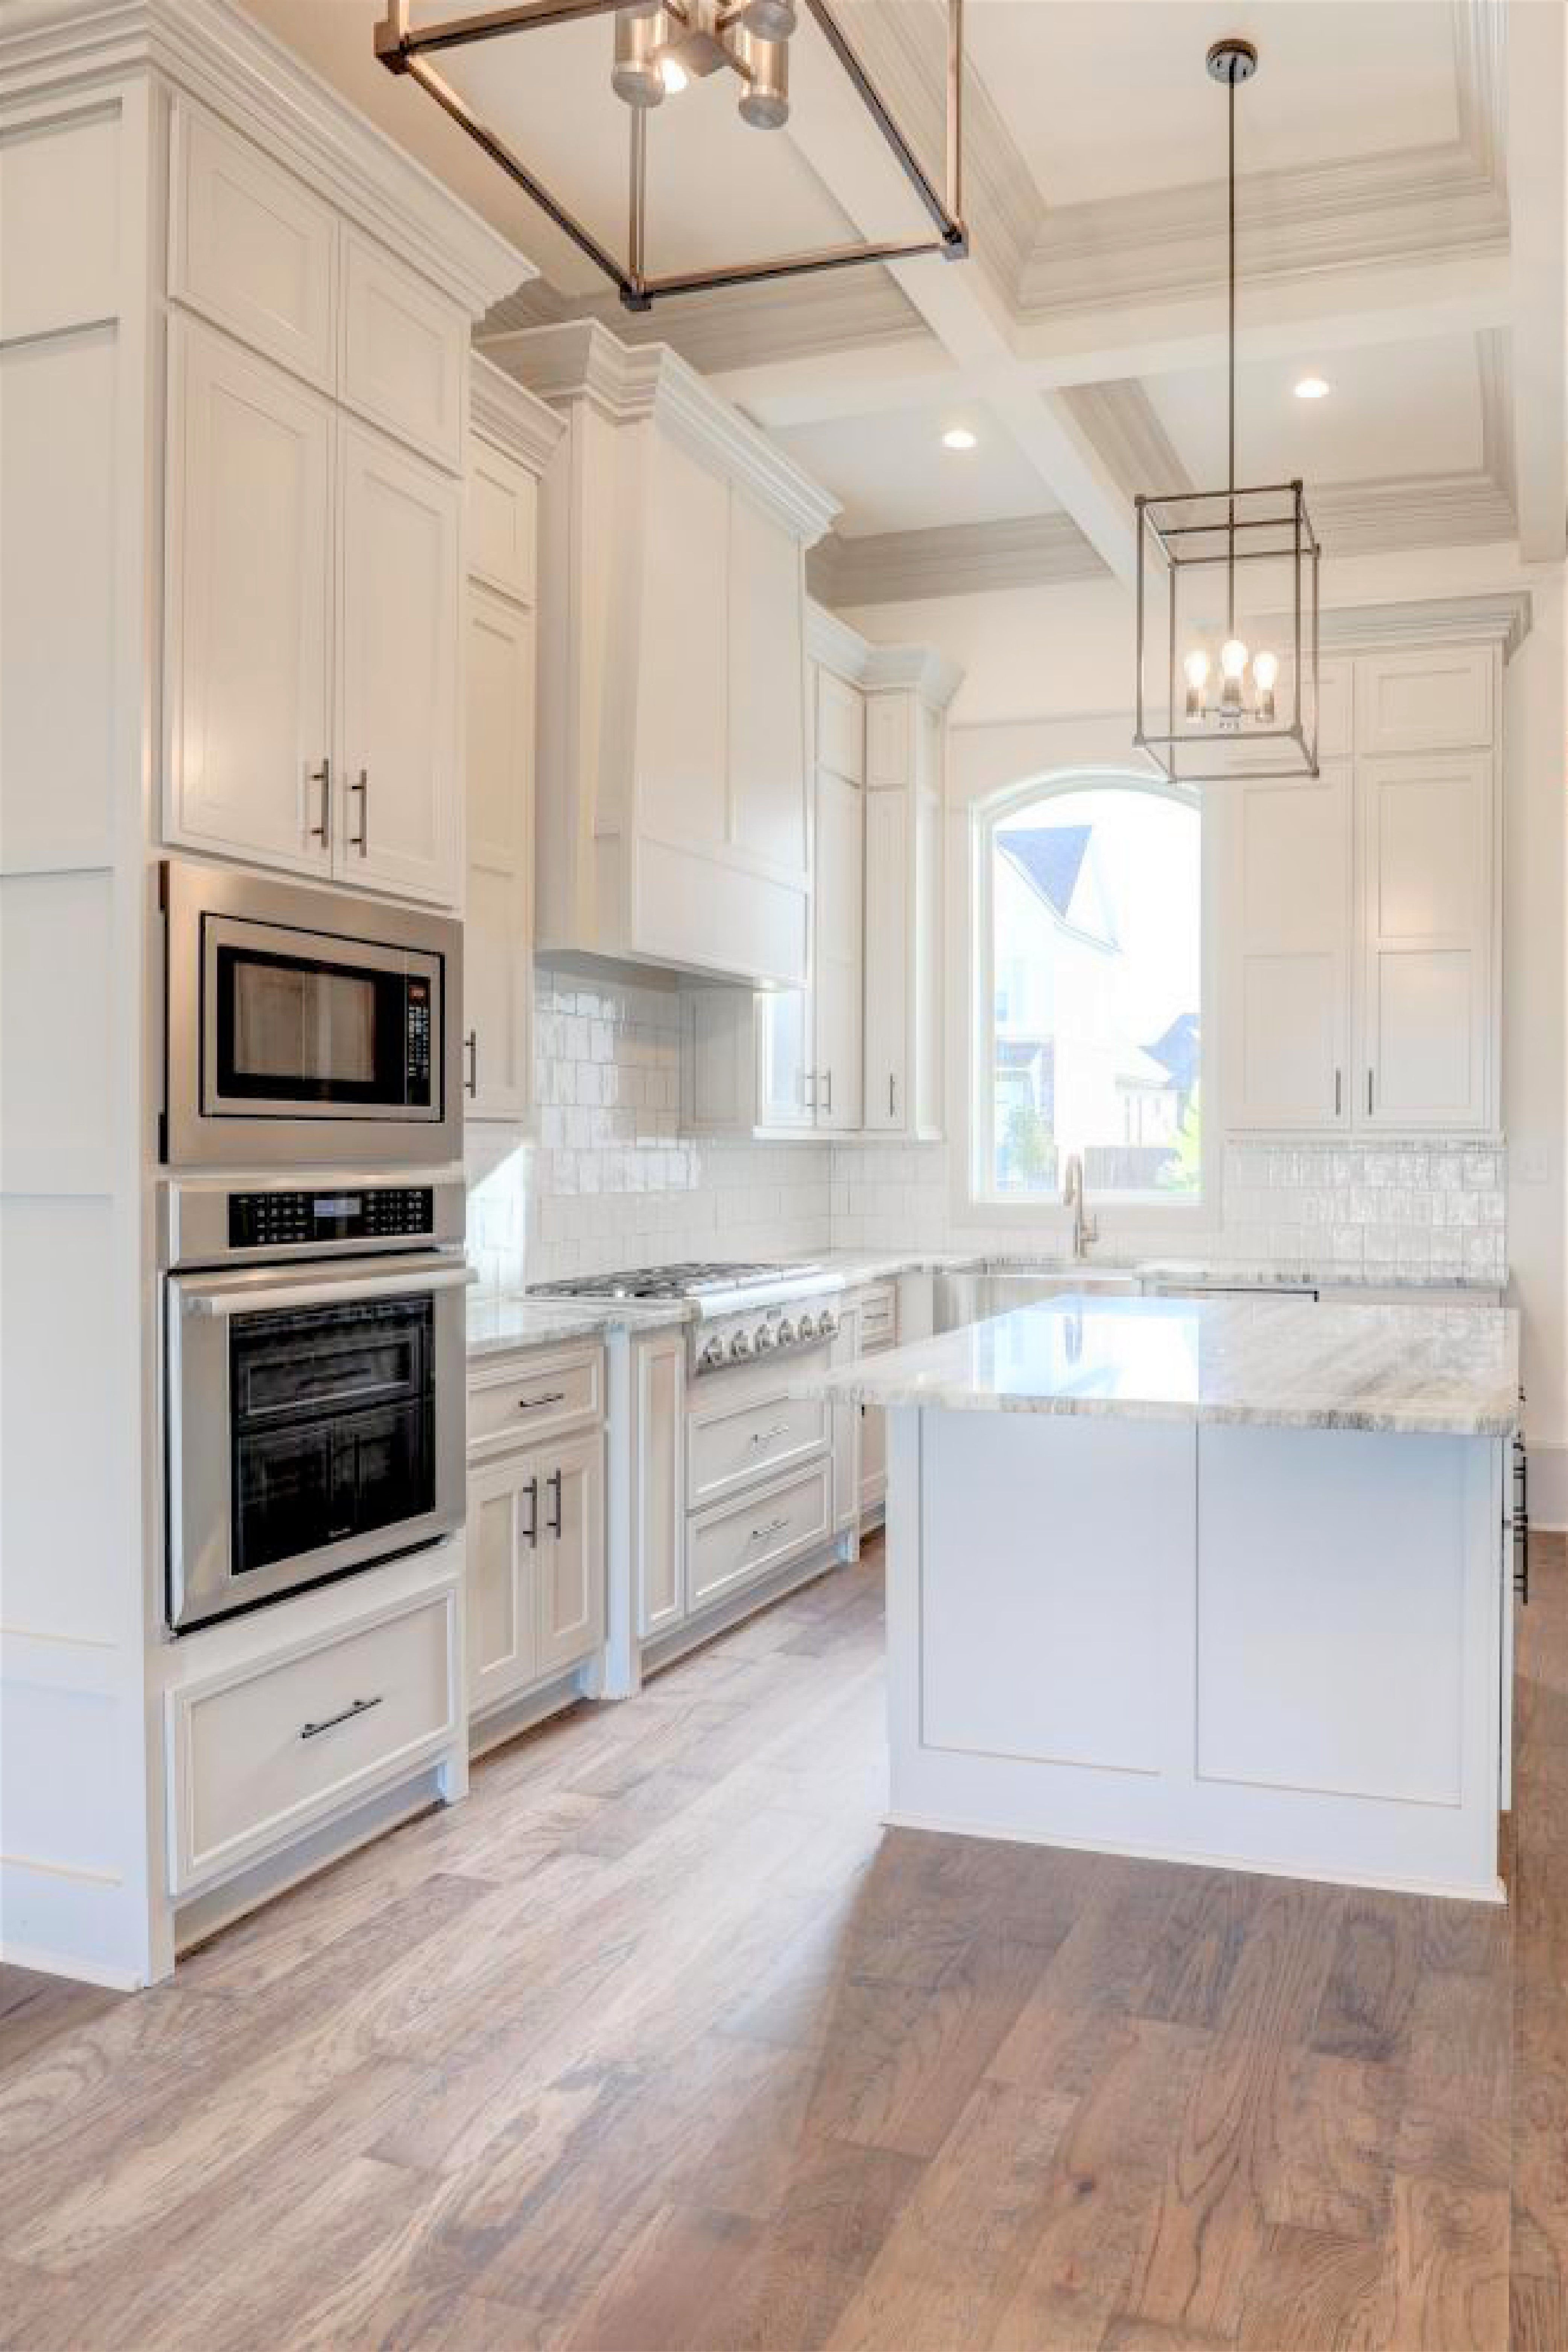 This Lafayette La Home Features A Stunning Kitchen With High Ceilings Custom Cabinets Stainless Steel Applia Kitchen With High Ceilings Kitchen High Ceiling